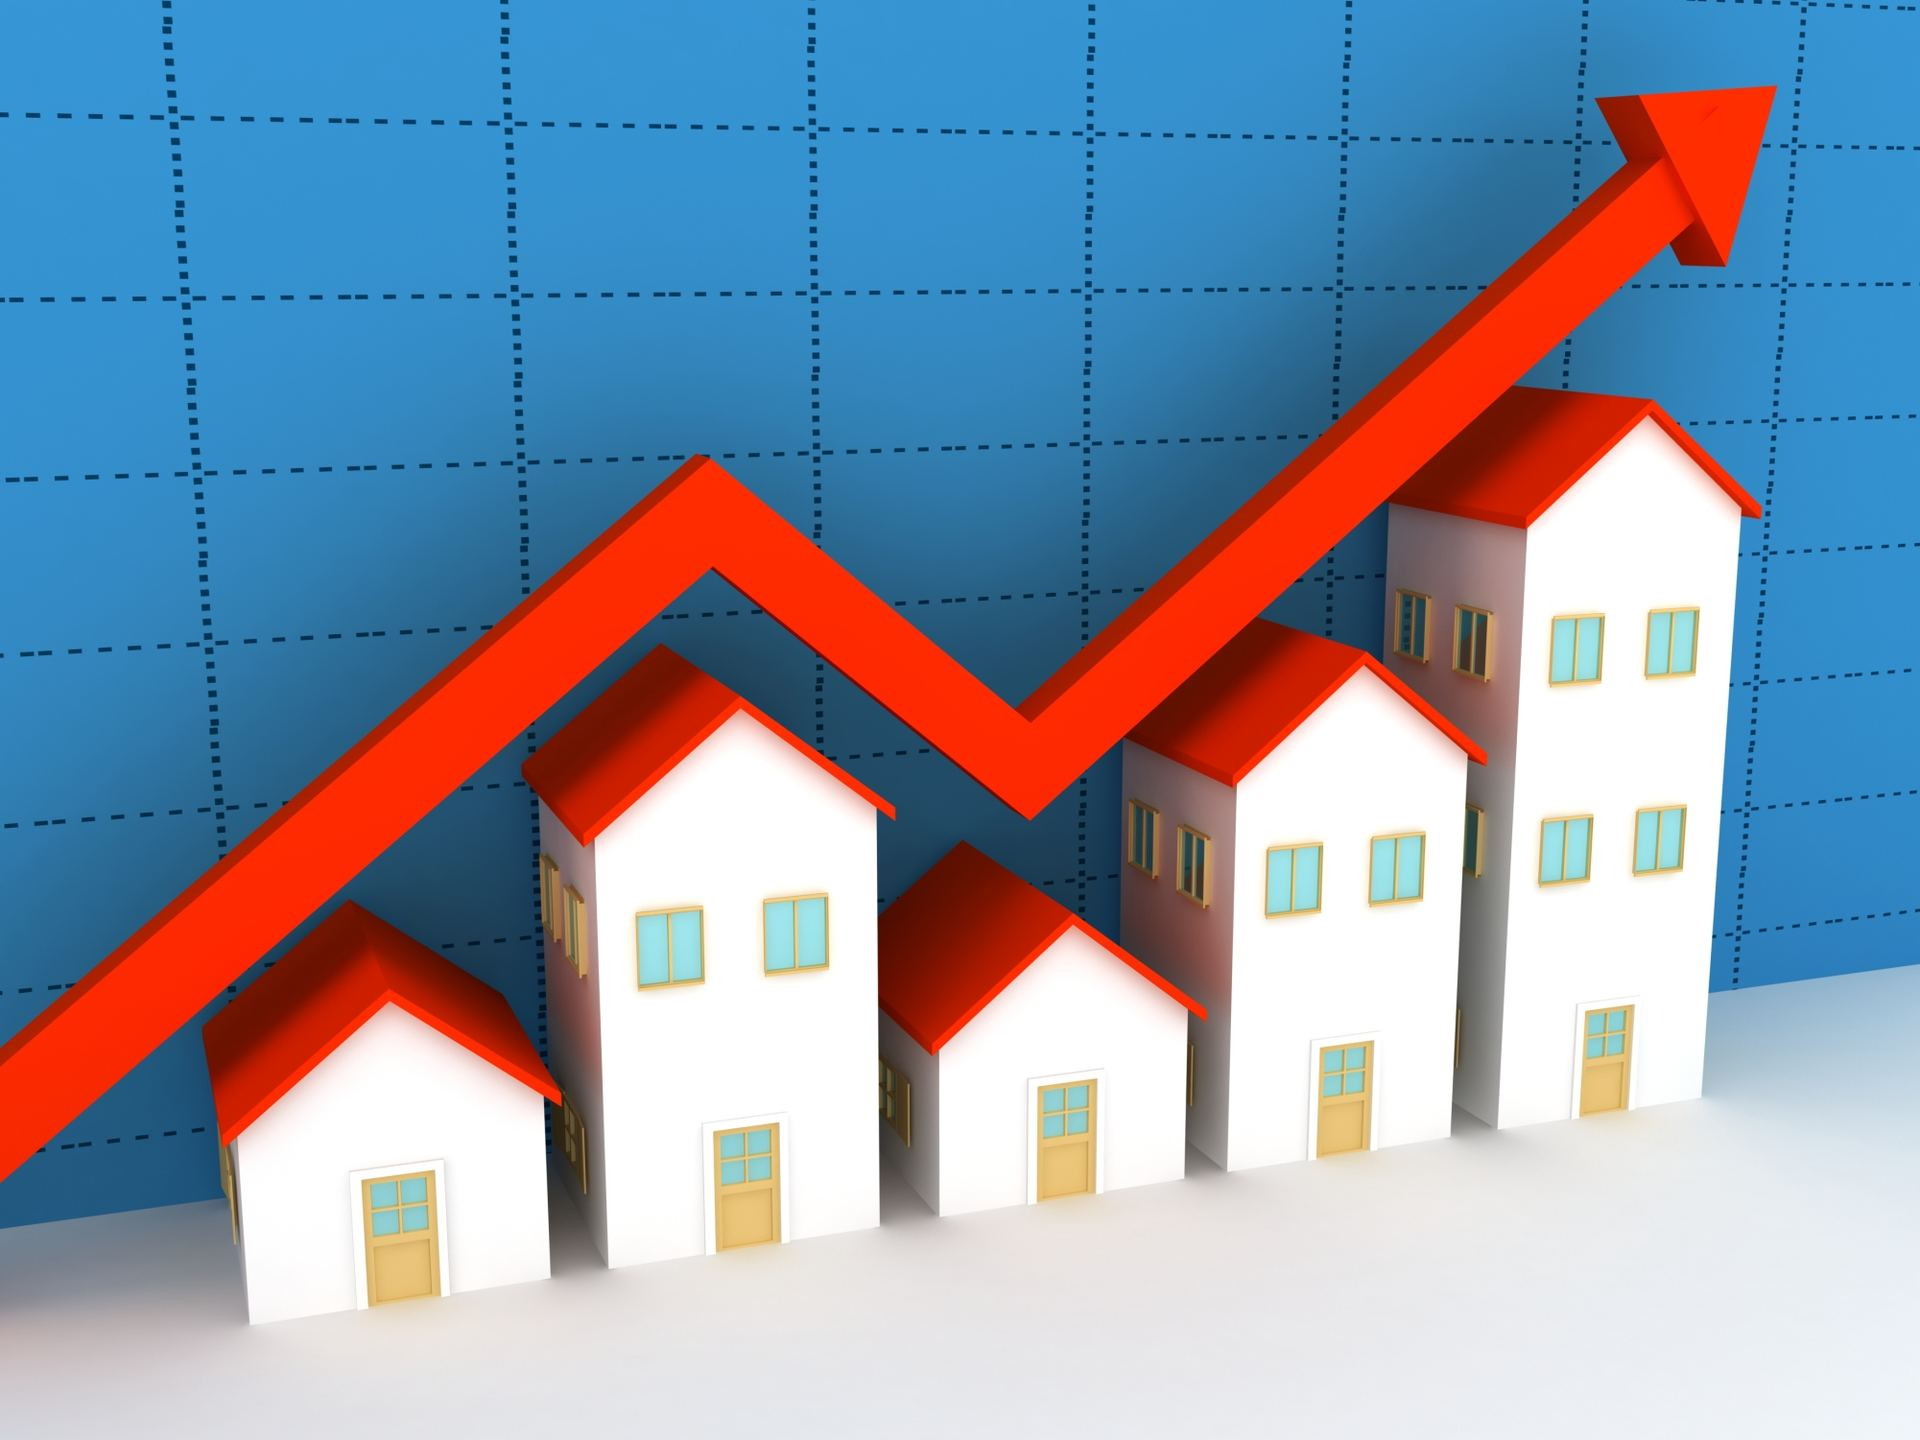 how much will property prices rise in 10 years